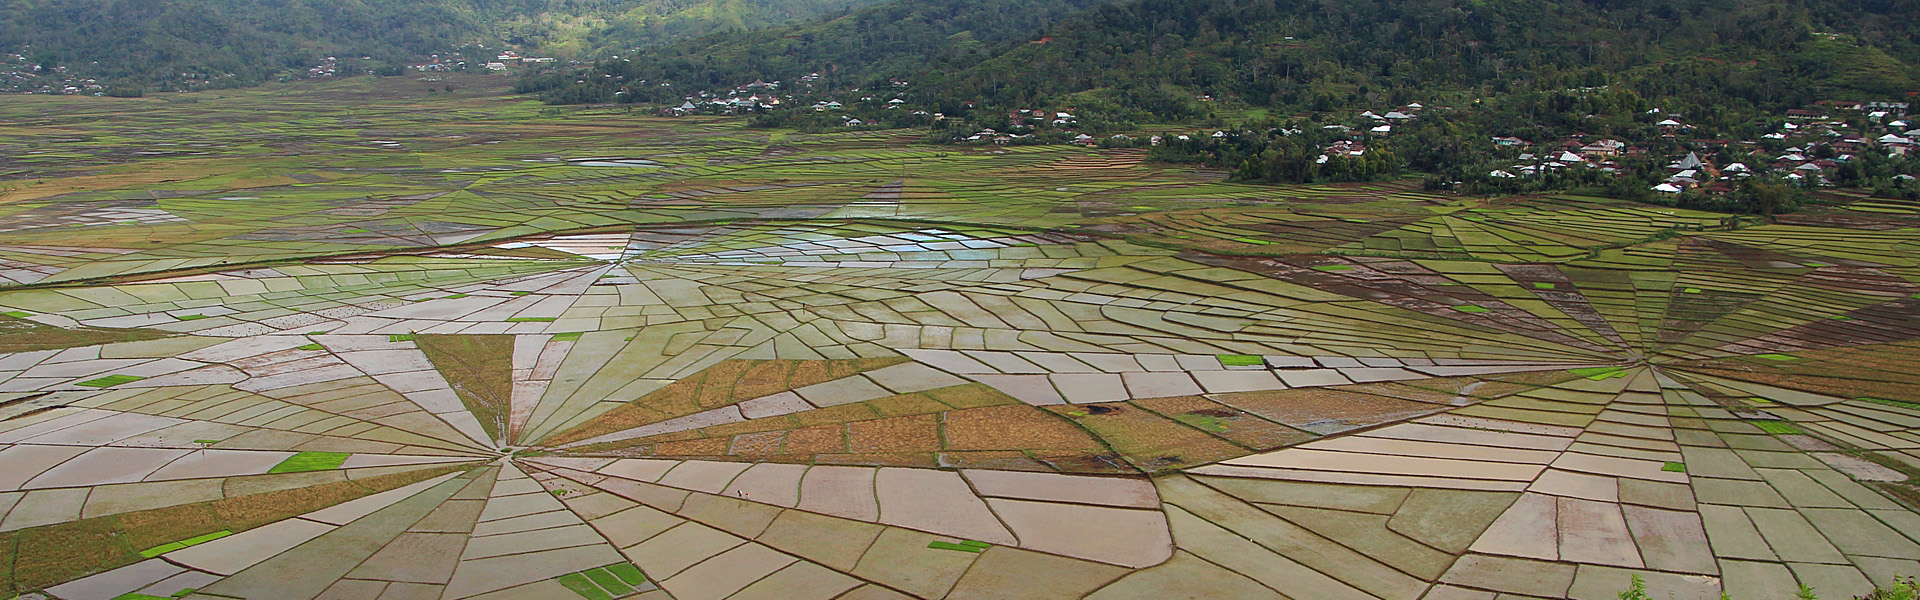 Linkgo spider rice fields near Cancar Village, Manggarai region, central Flores